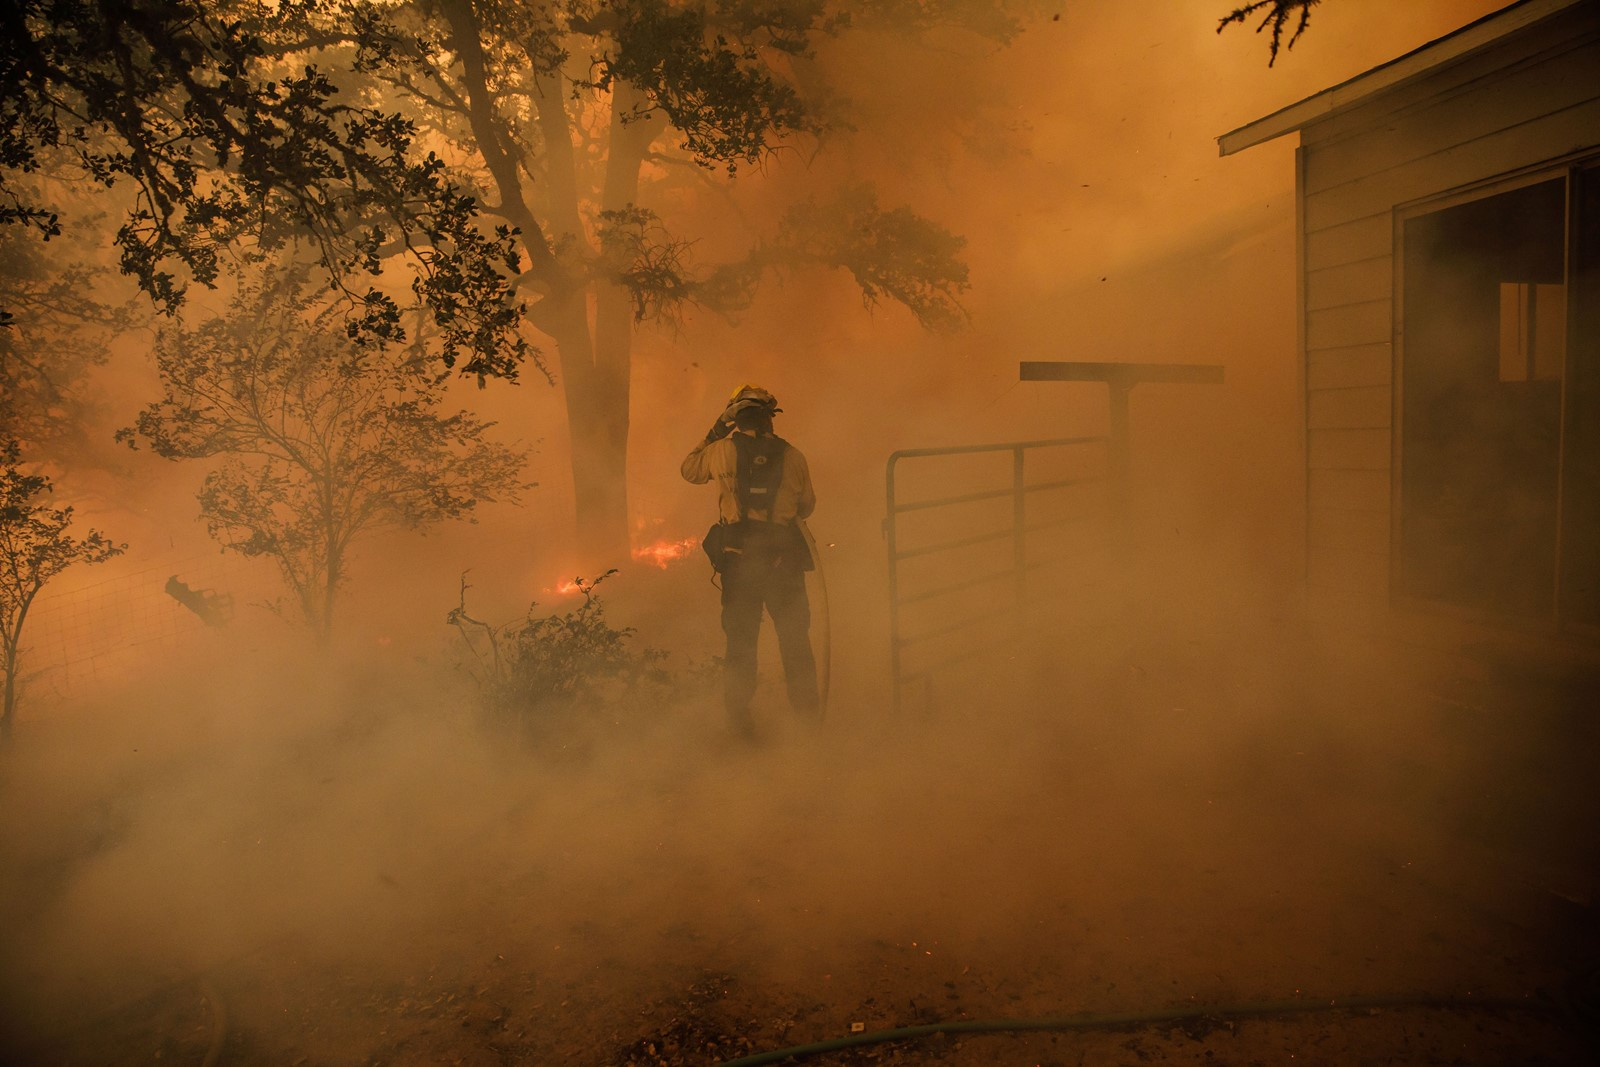 Firefighters near Lakeport in Mendocino County try to keep a home from being destroyed. A common thread in the California fires this year is extreme heat, the likes of which the state has never seen in the modern historical record. — Photograph: Marcus Yam/Los Angeles Times.